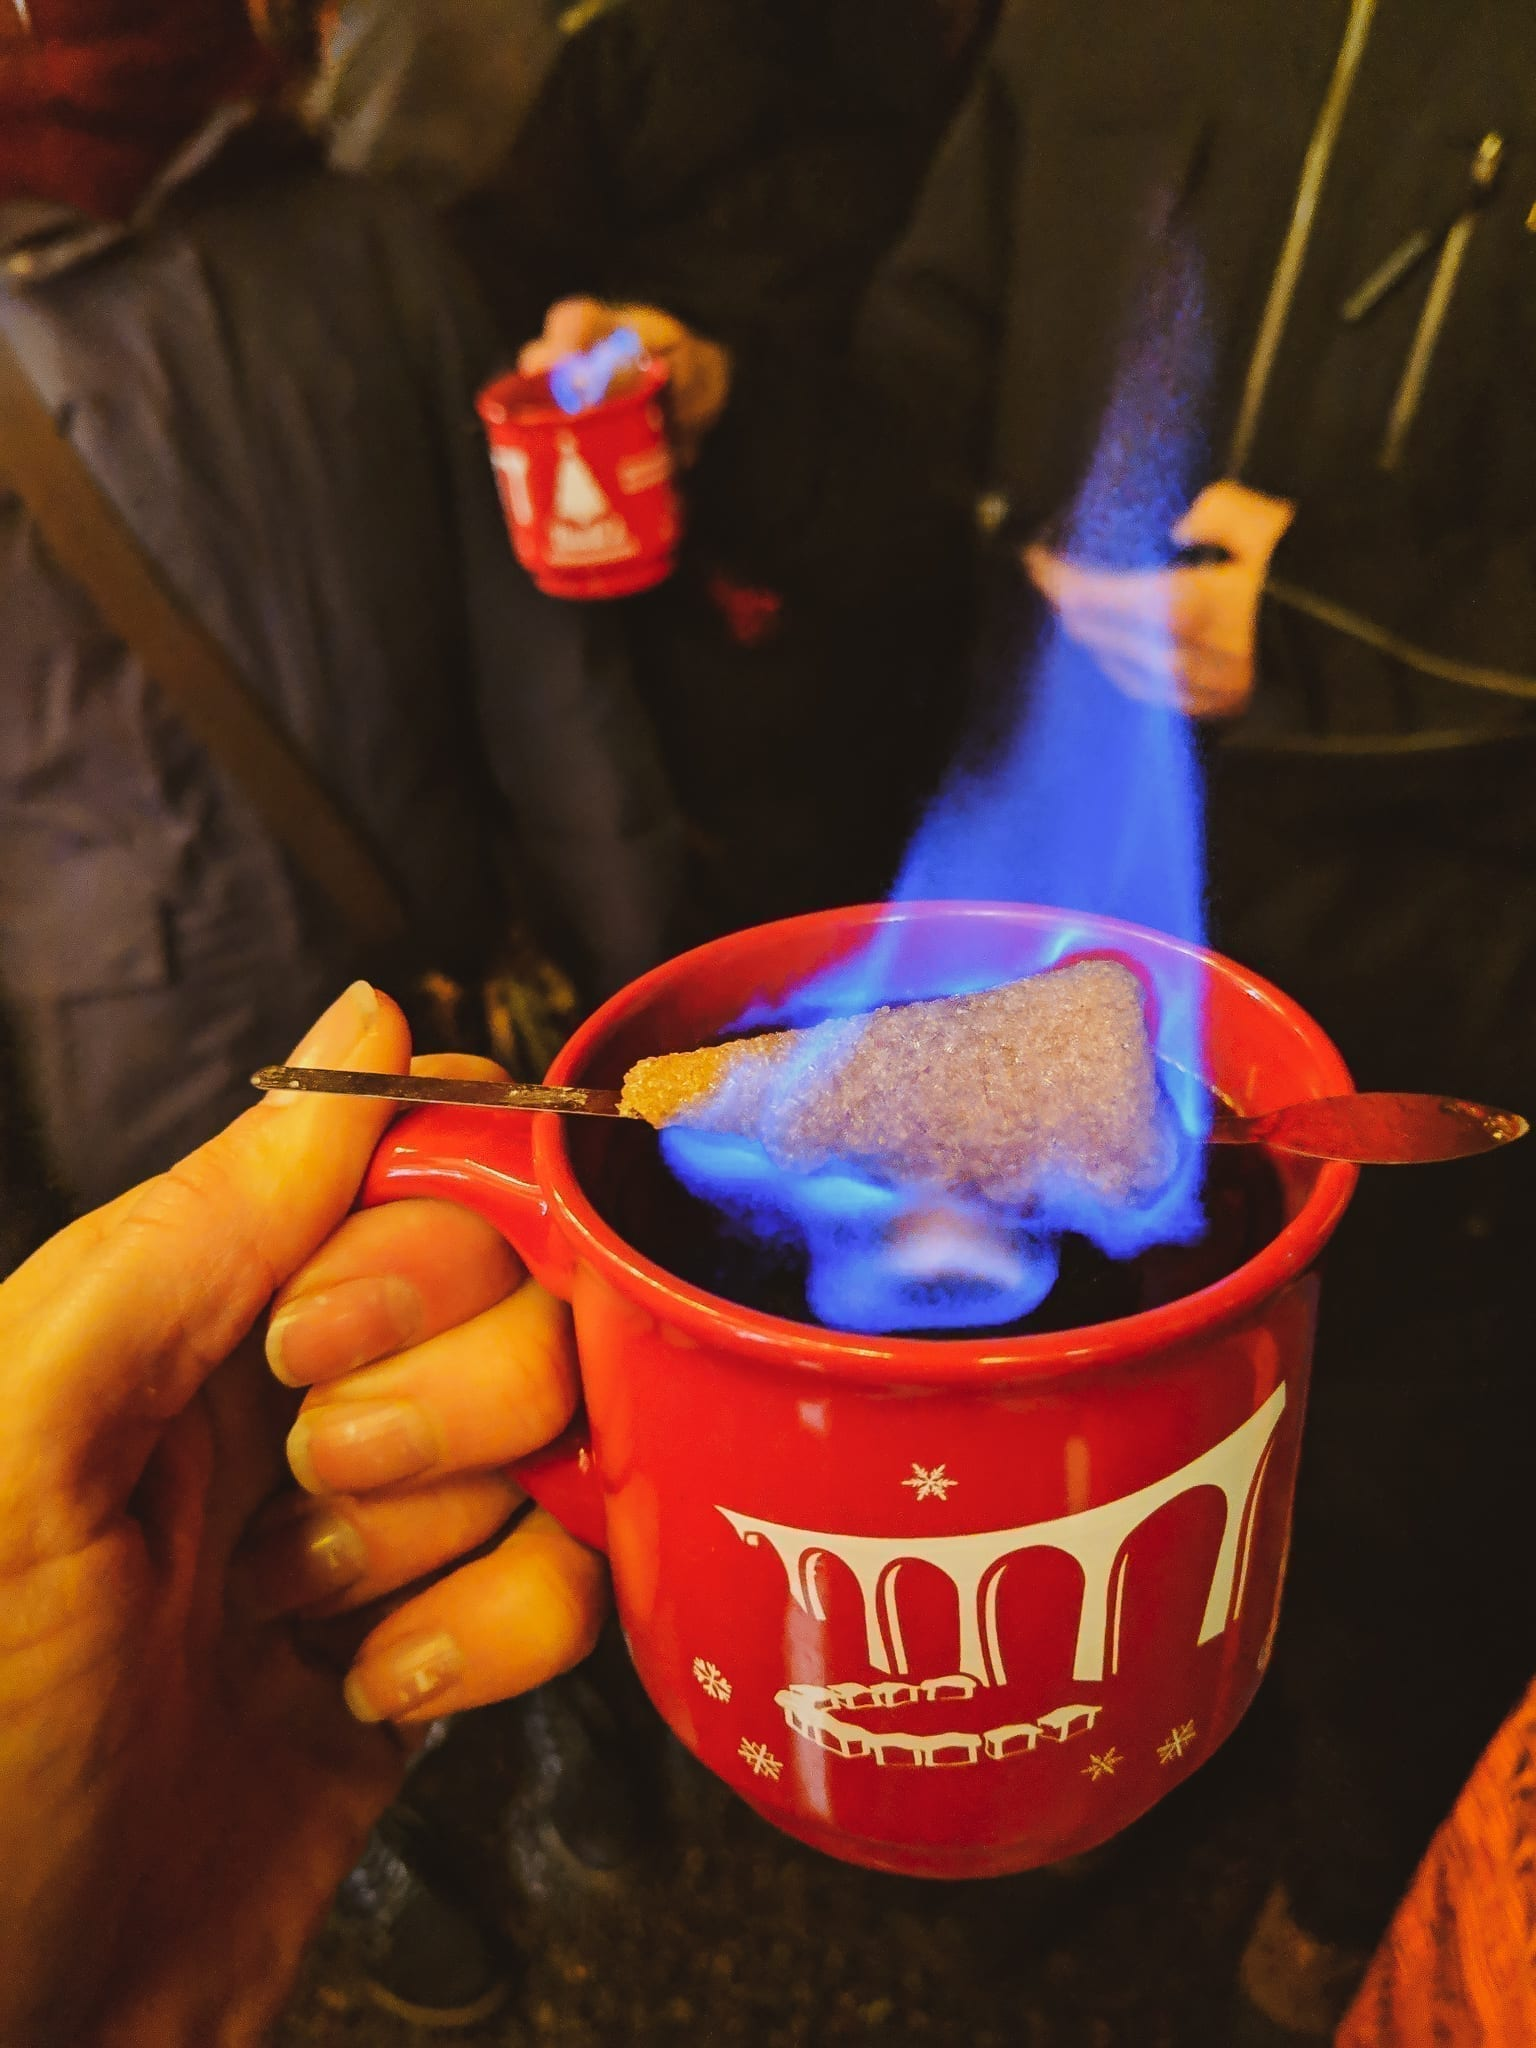 Feuerzangenbowle, flaming Glühwein at a famous German Christmas Market.